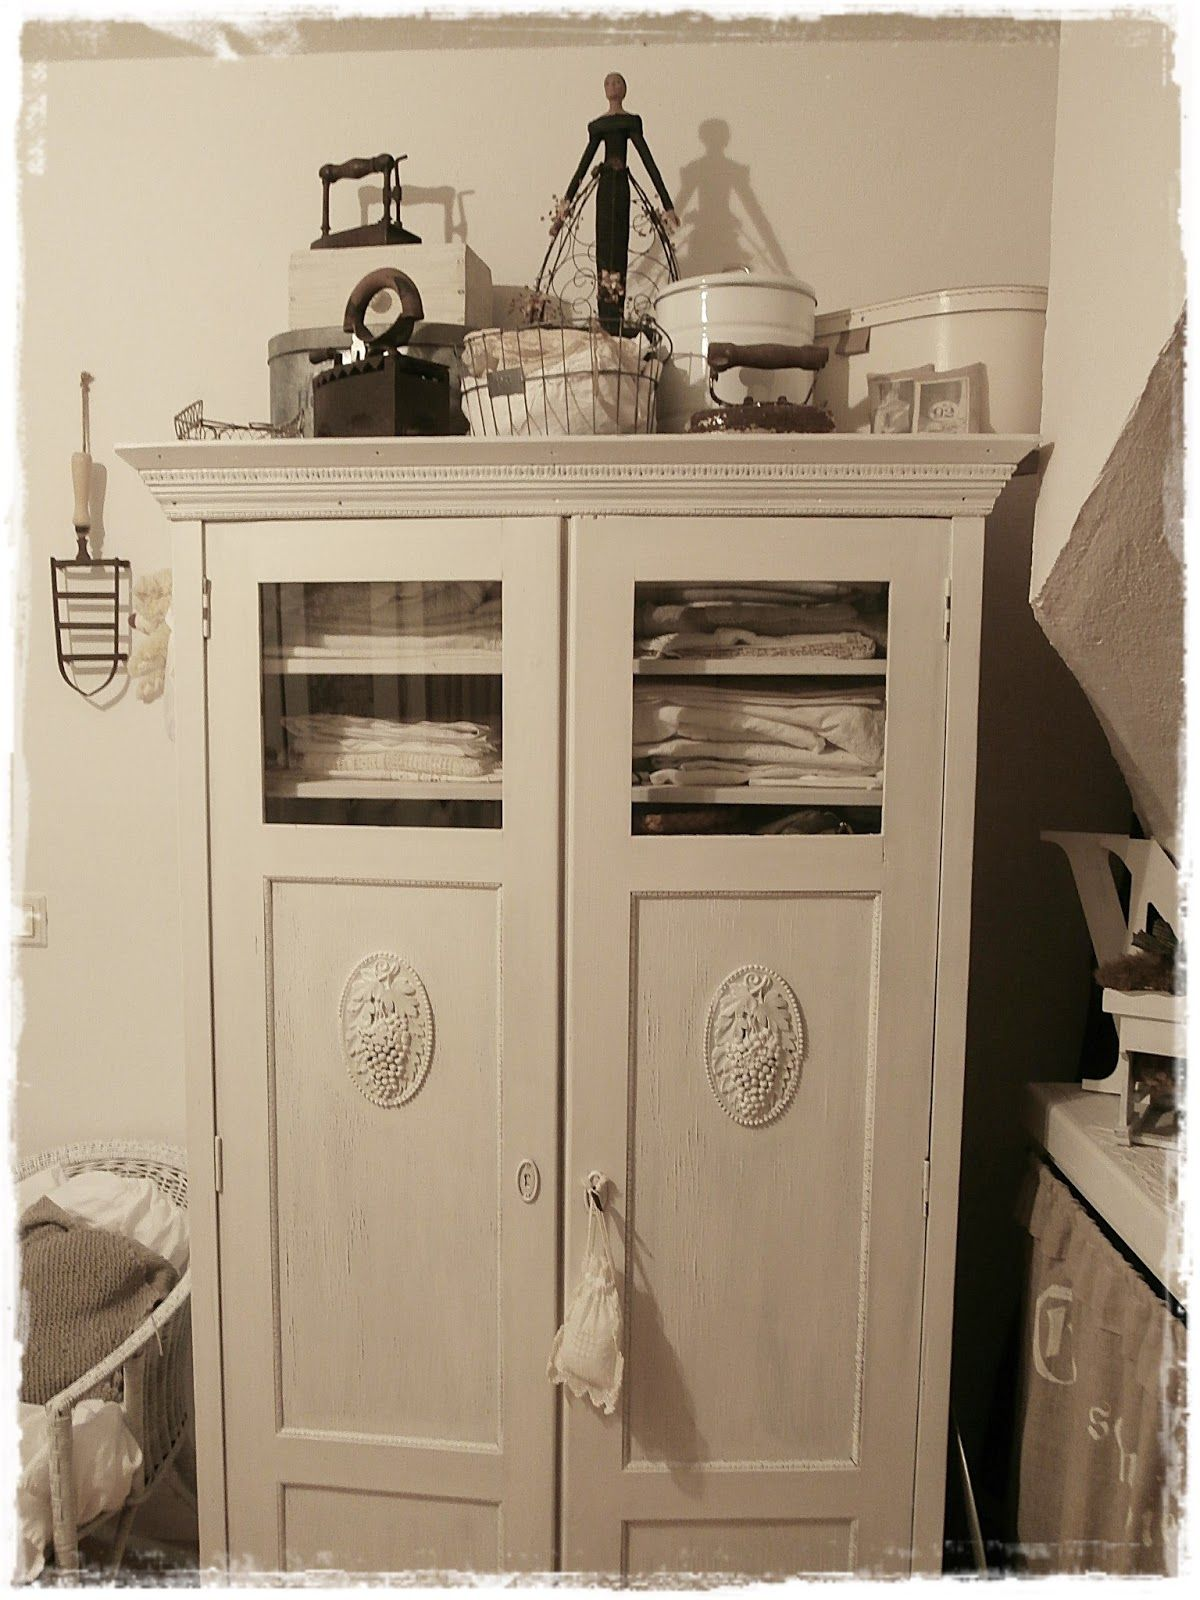 Rustic Chic Bathroom Decor bathroom iron room laundry linen closet whitewashed chippy shabby